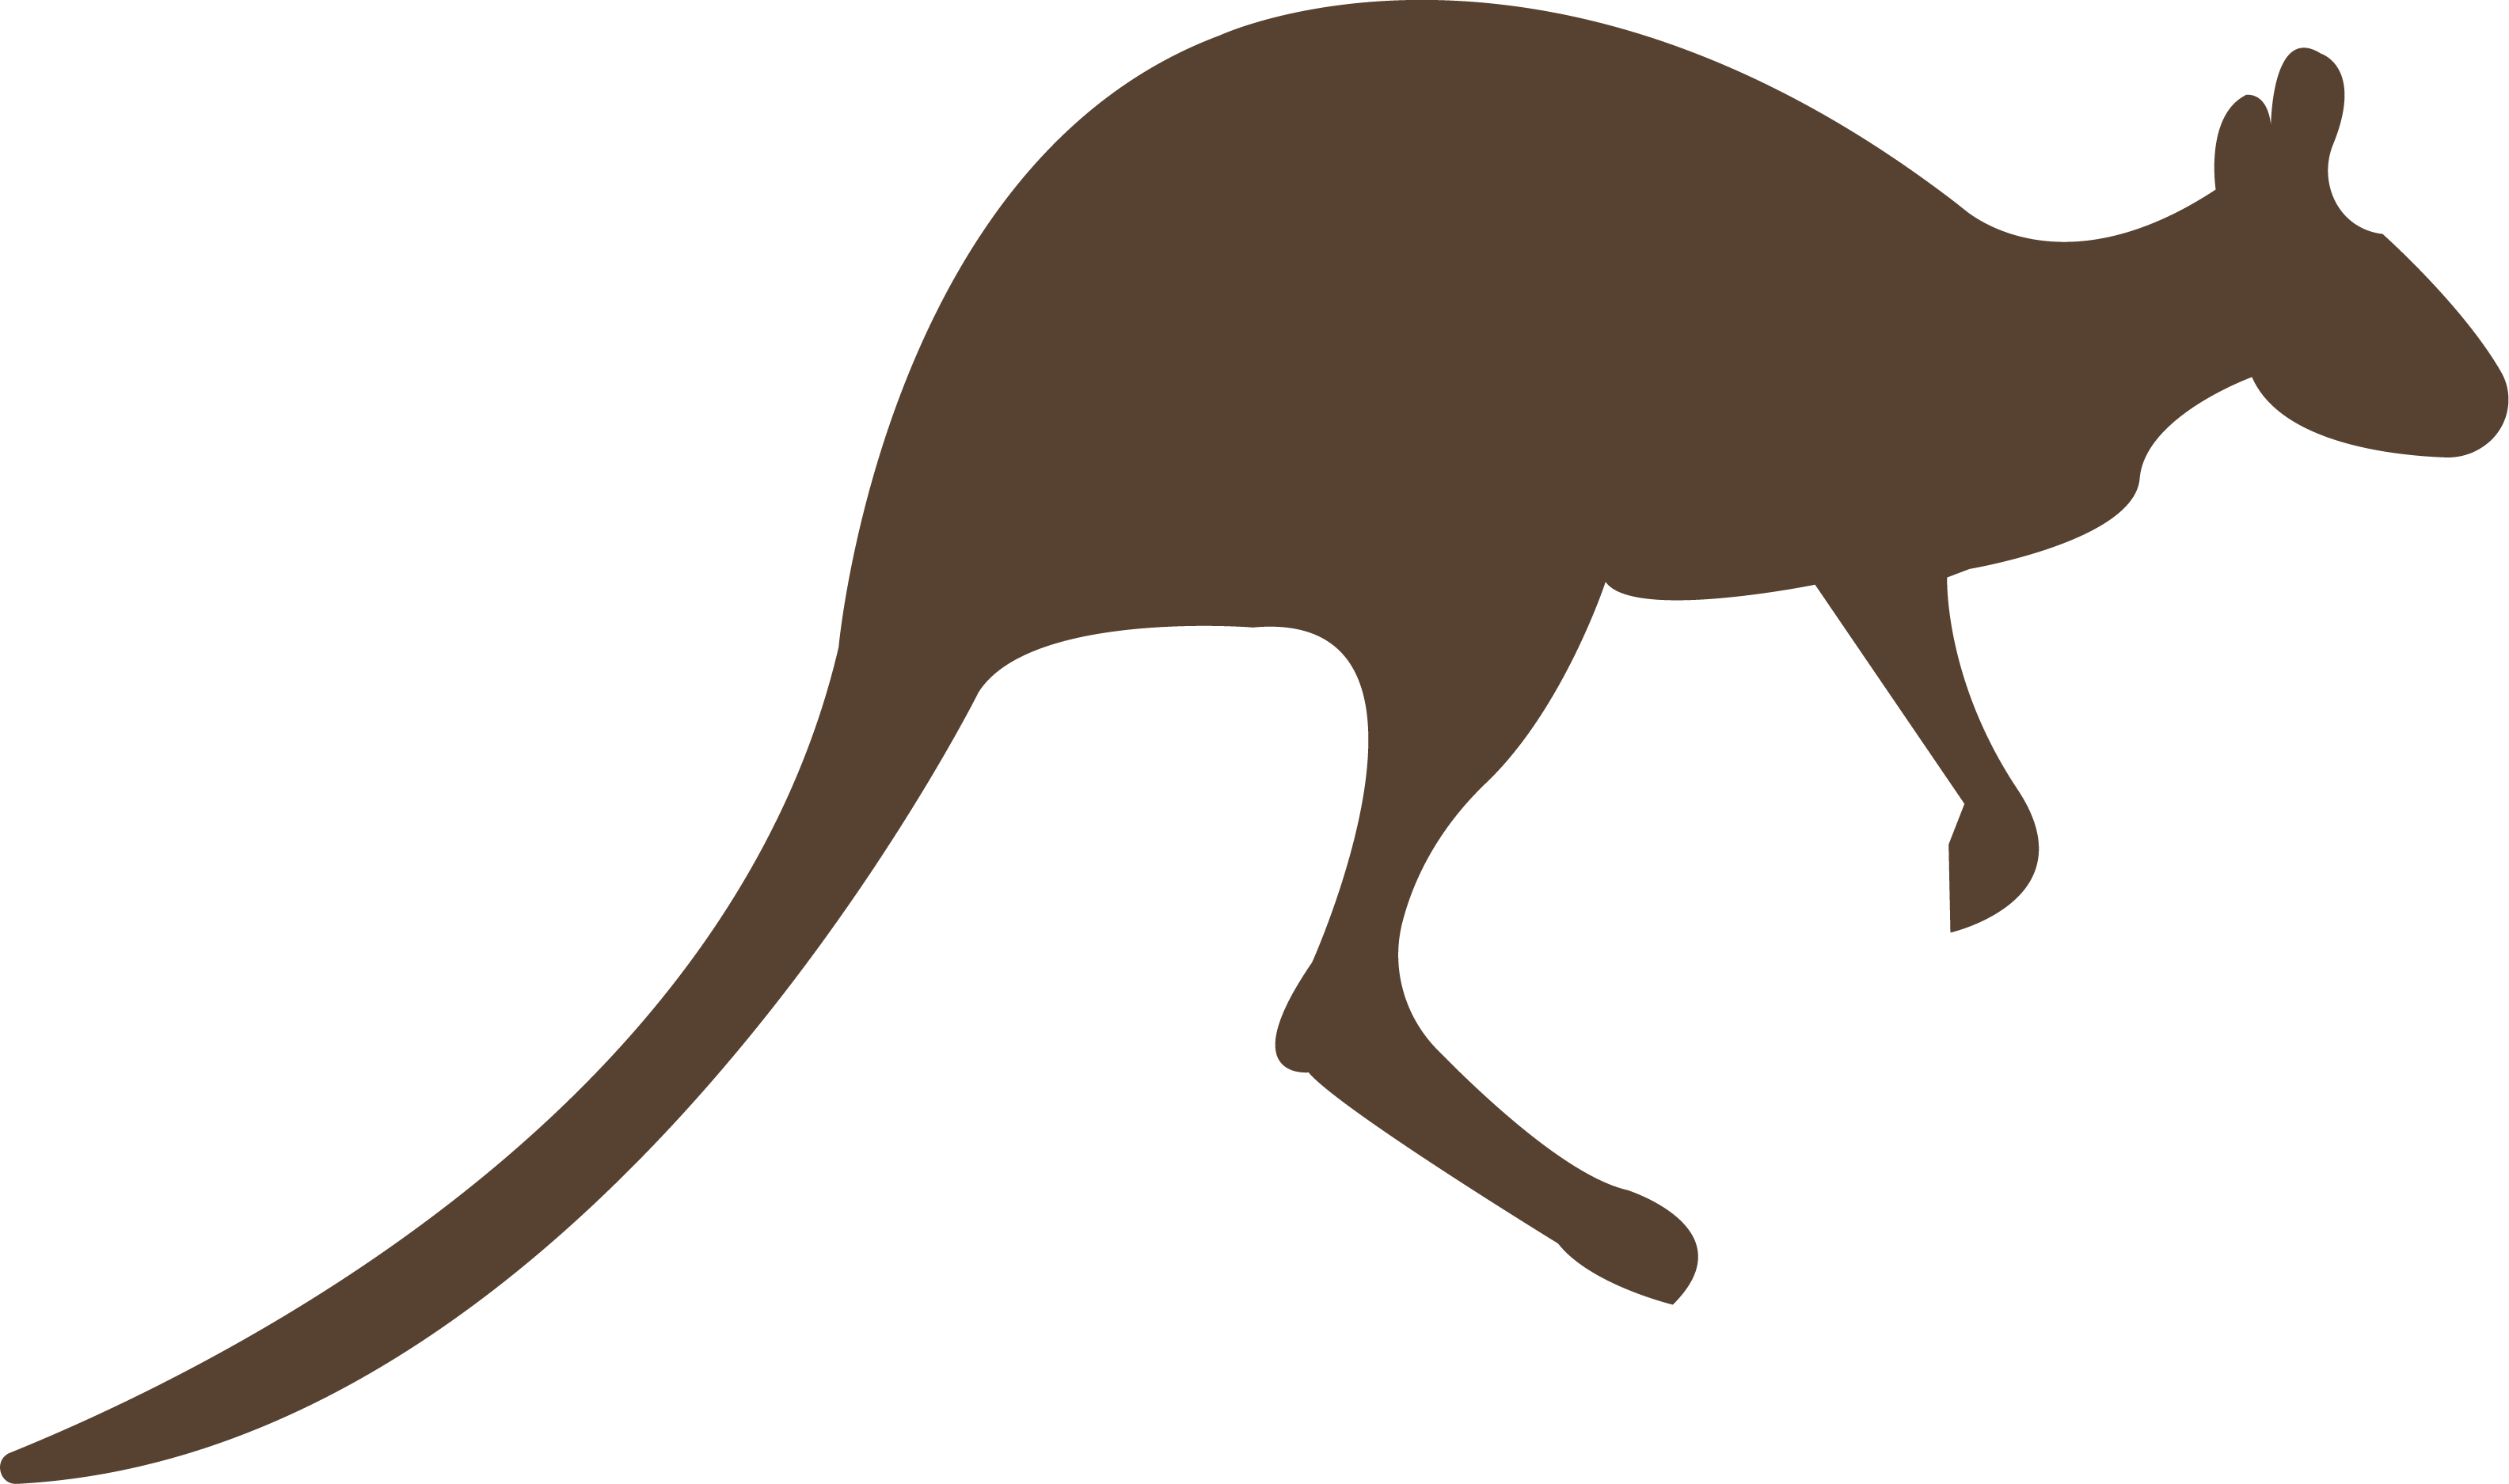 Kangaroo clipart cute. Png transparent quality images